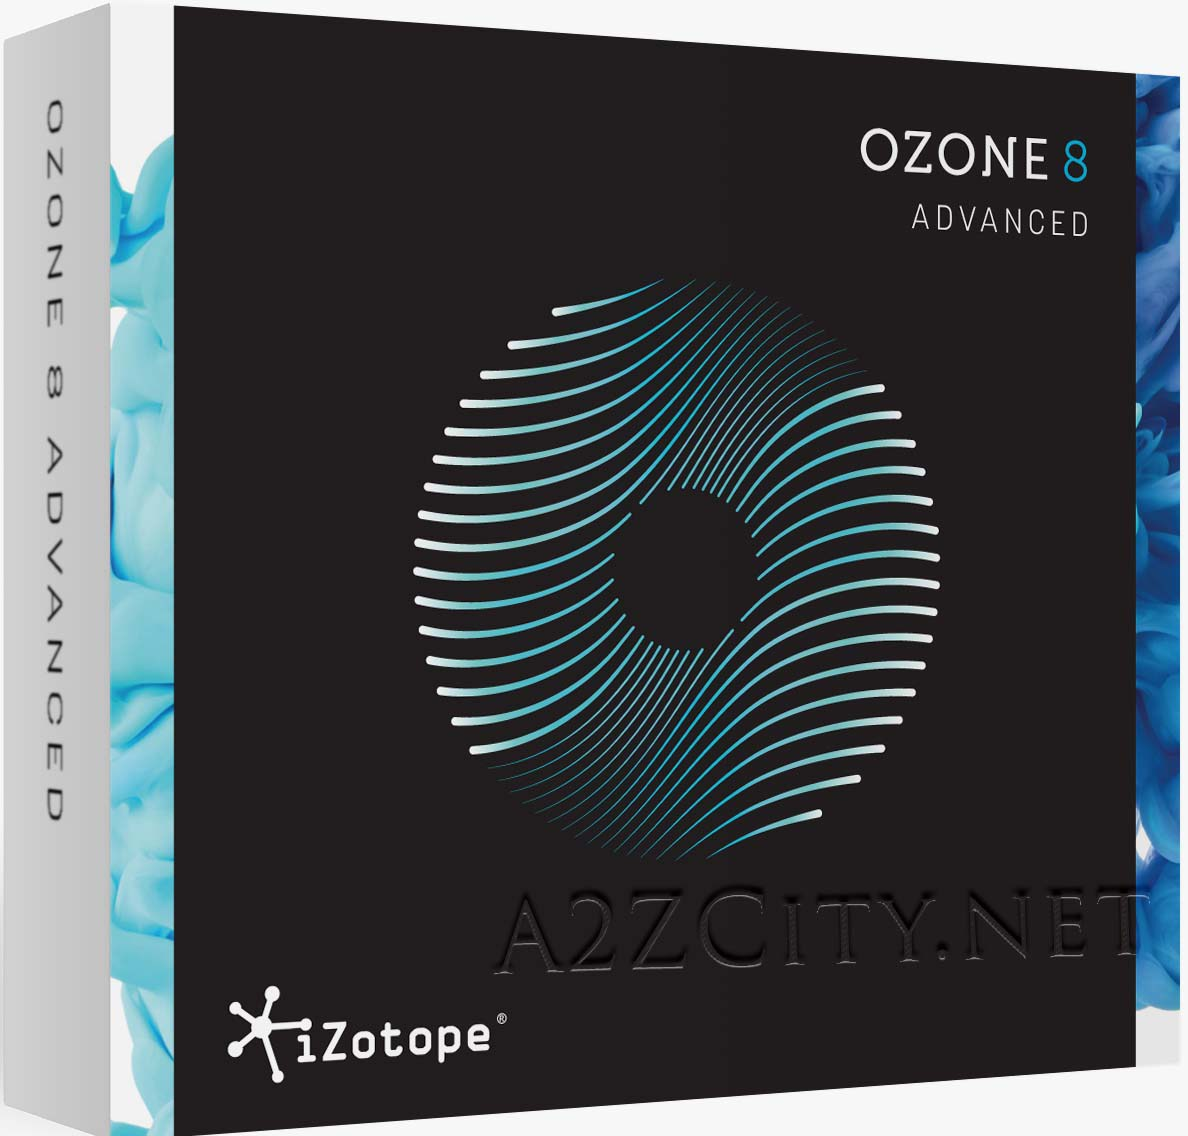 IZotope Ozone 8 Crack & Serial Key 2018 Free Download